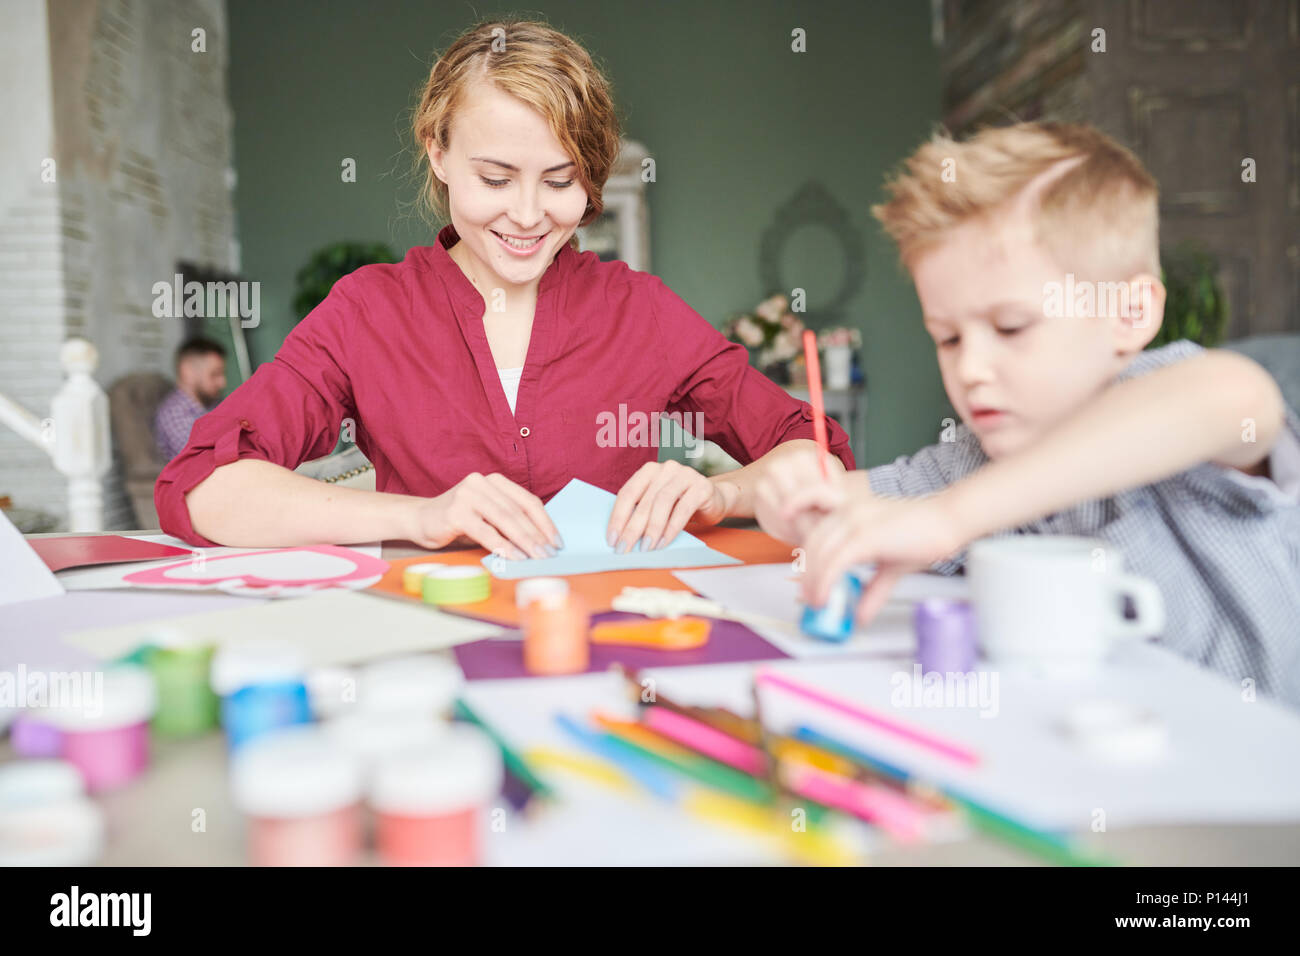 Making Present for Fathers Day - Stock Image